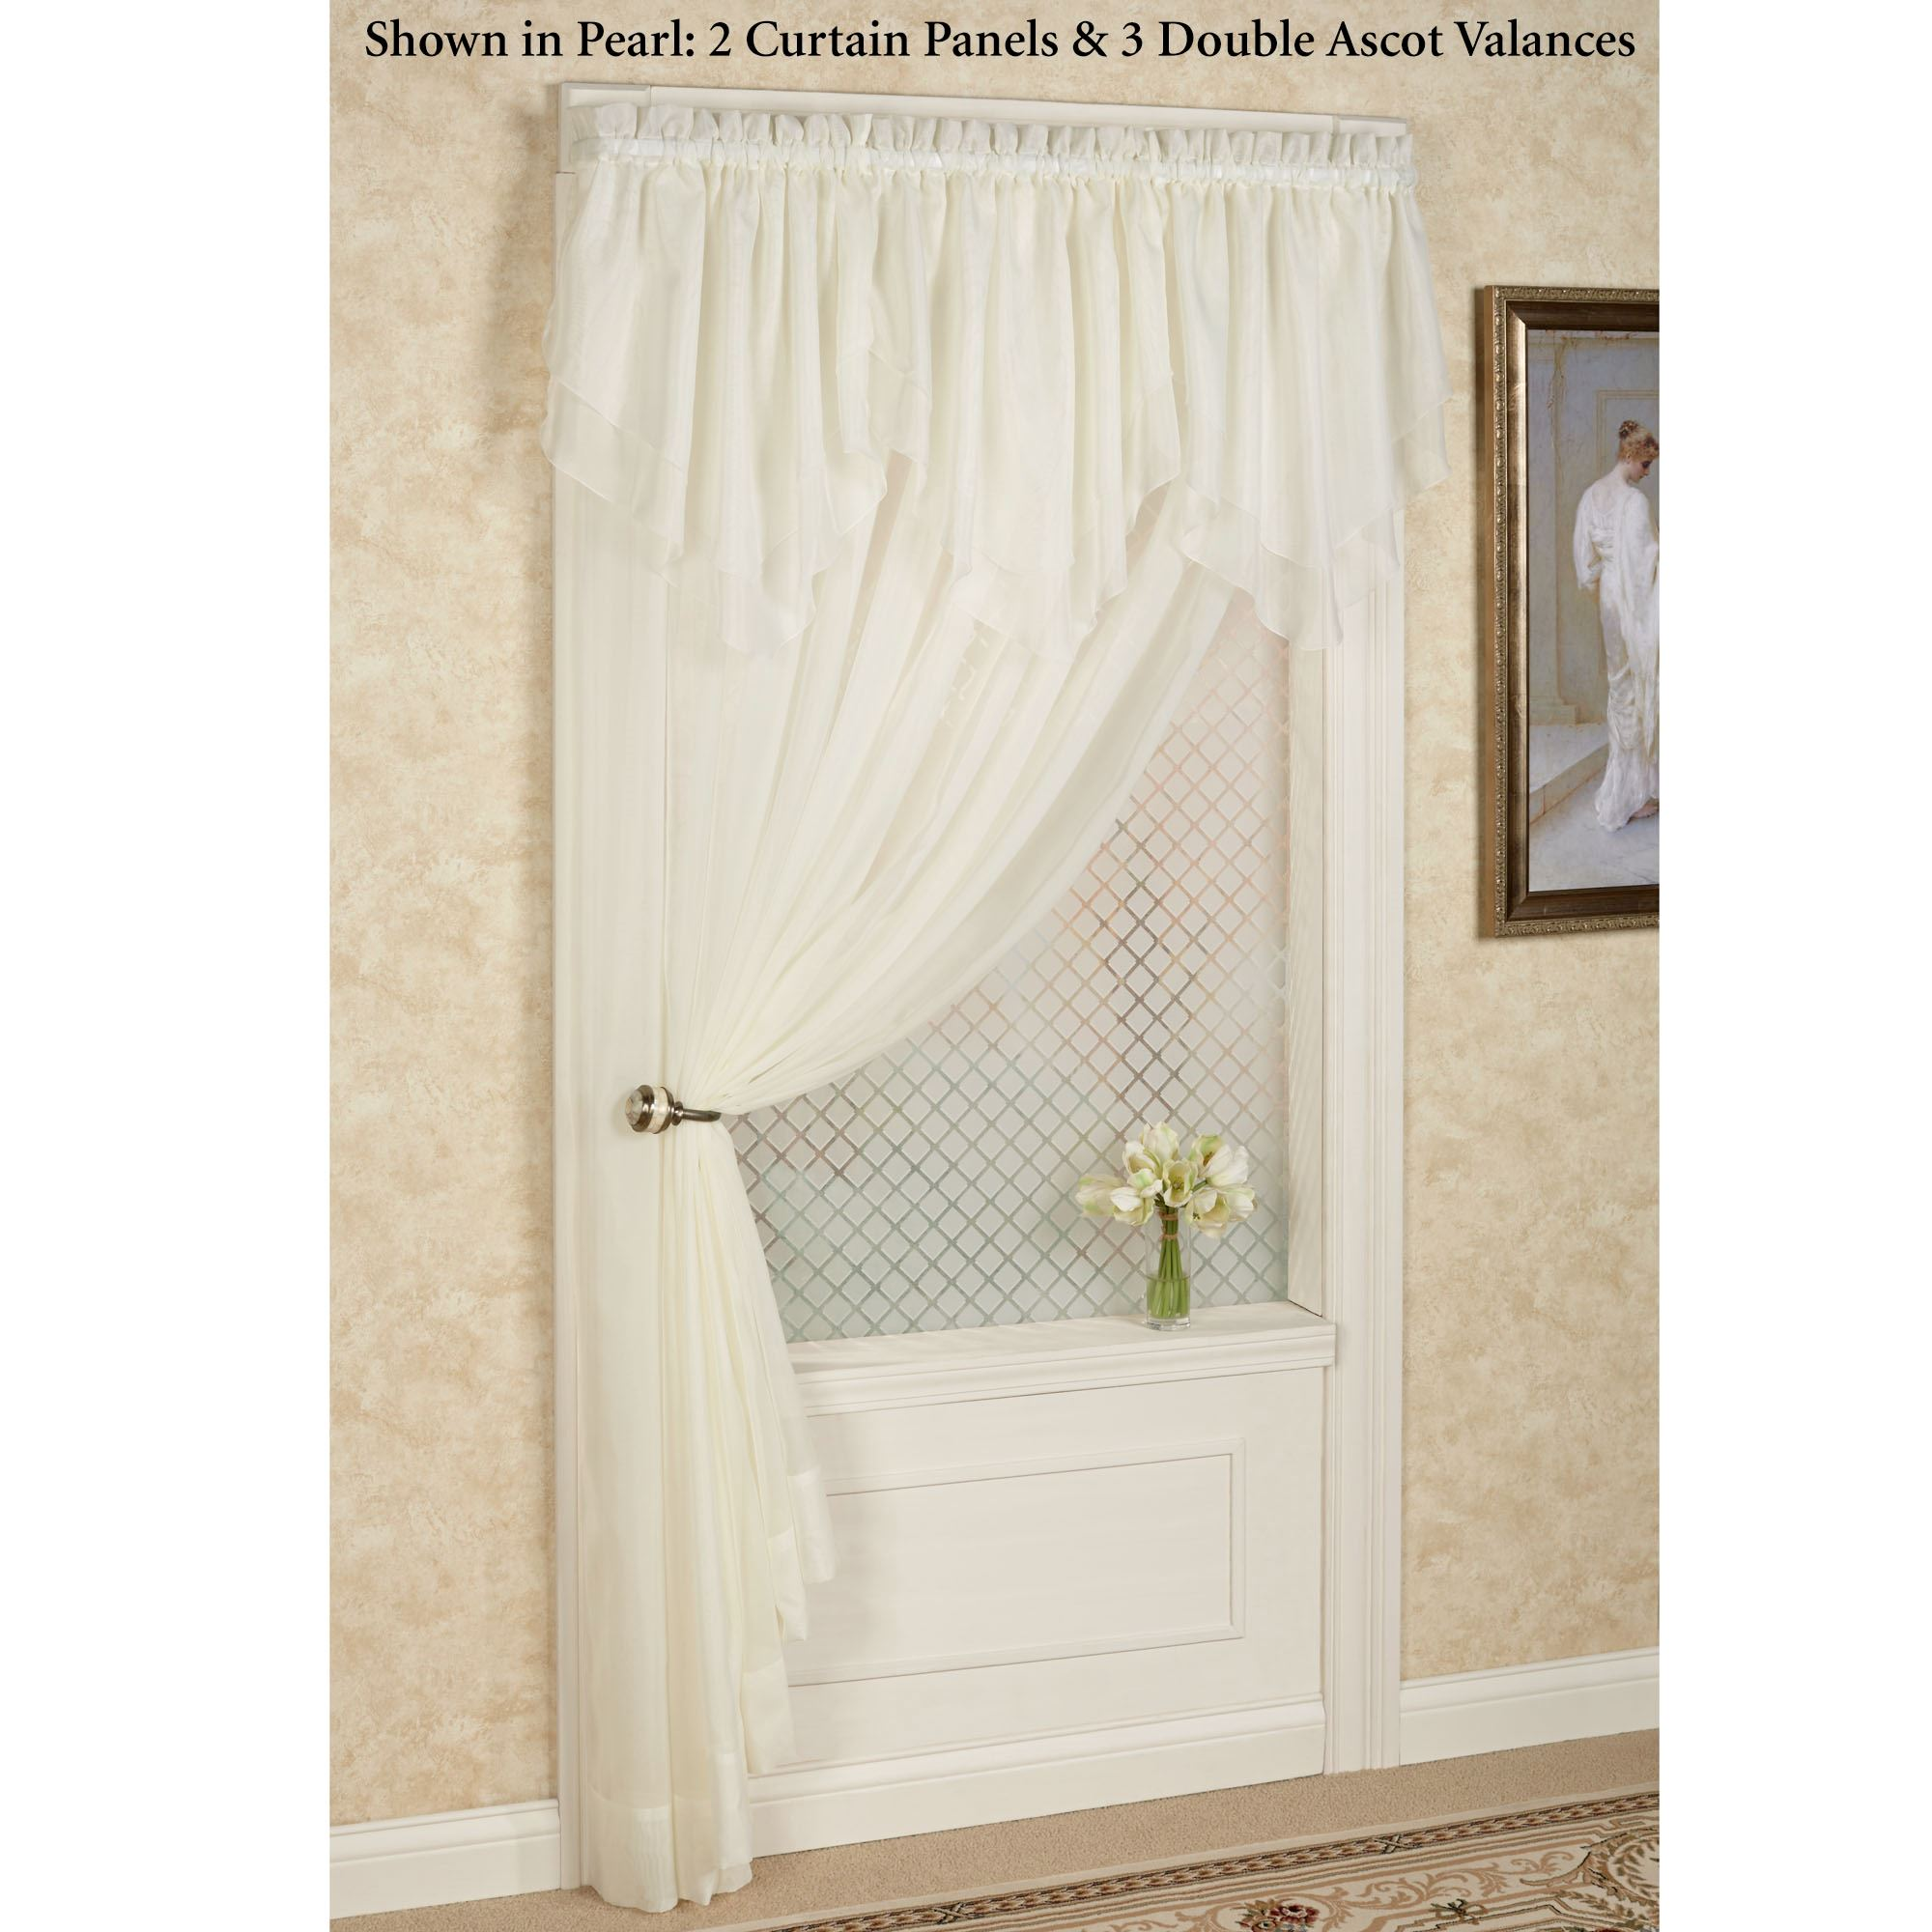 Emelia Sheer Voile Double Ascot Valance Window Treatment